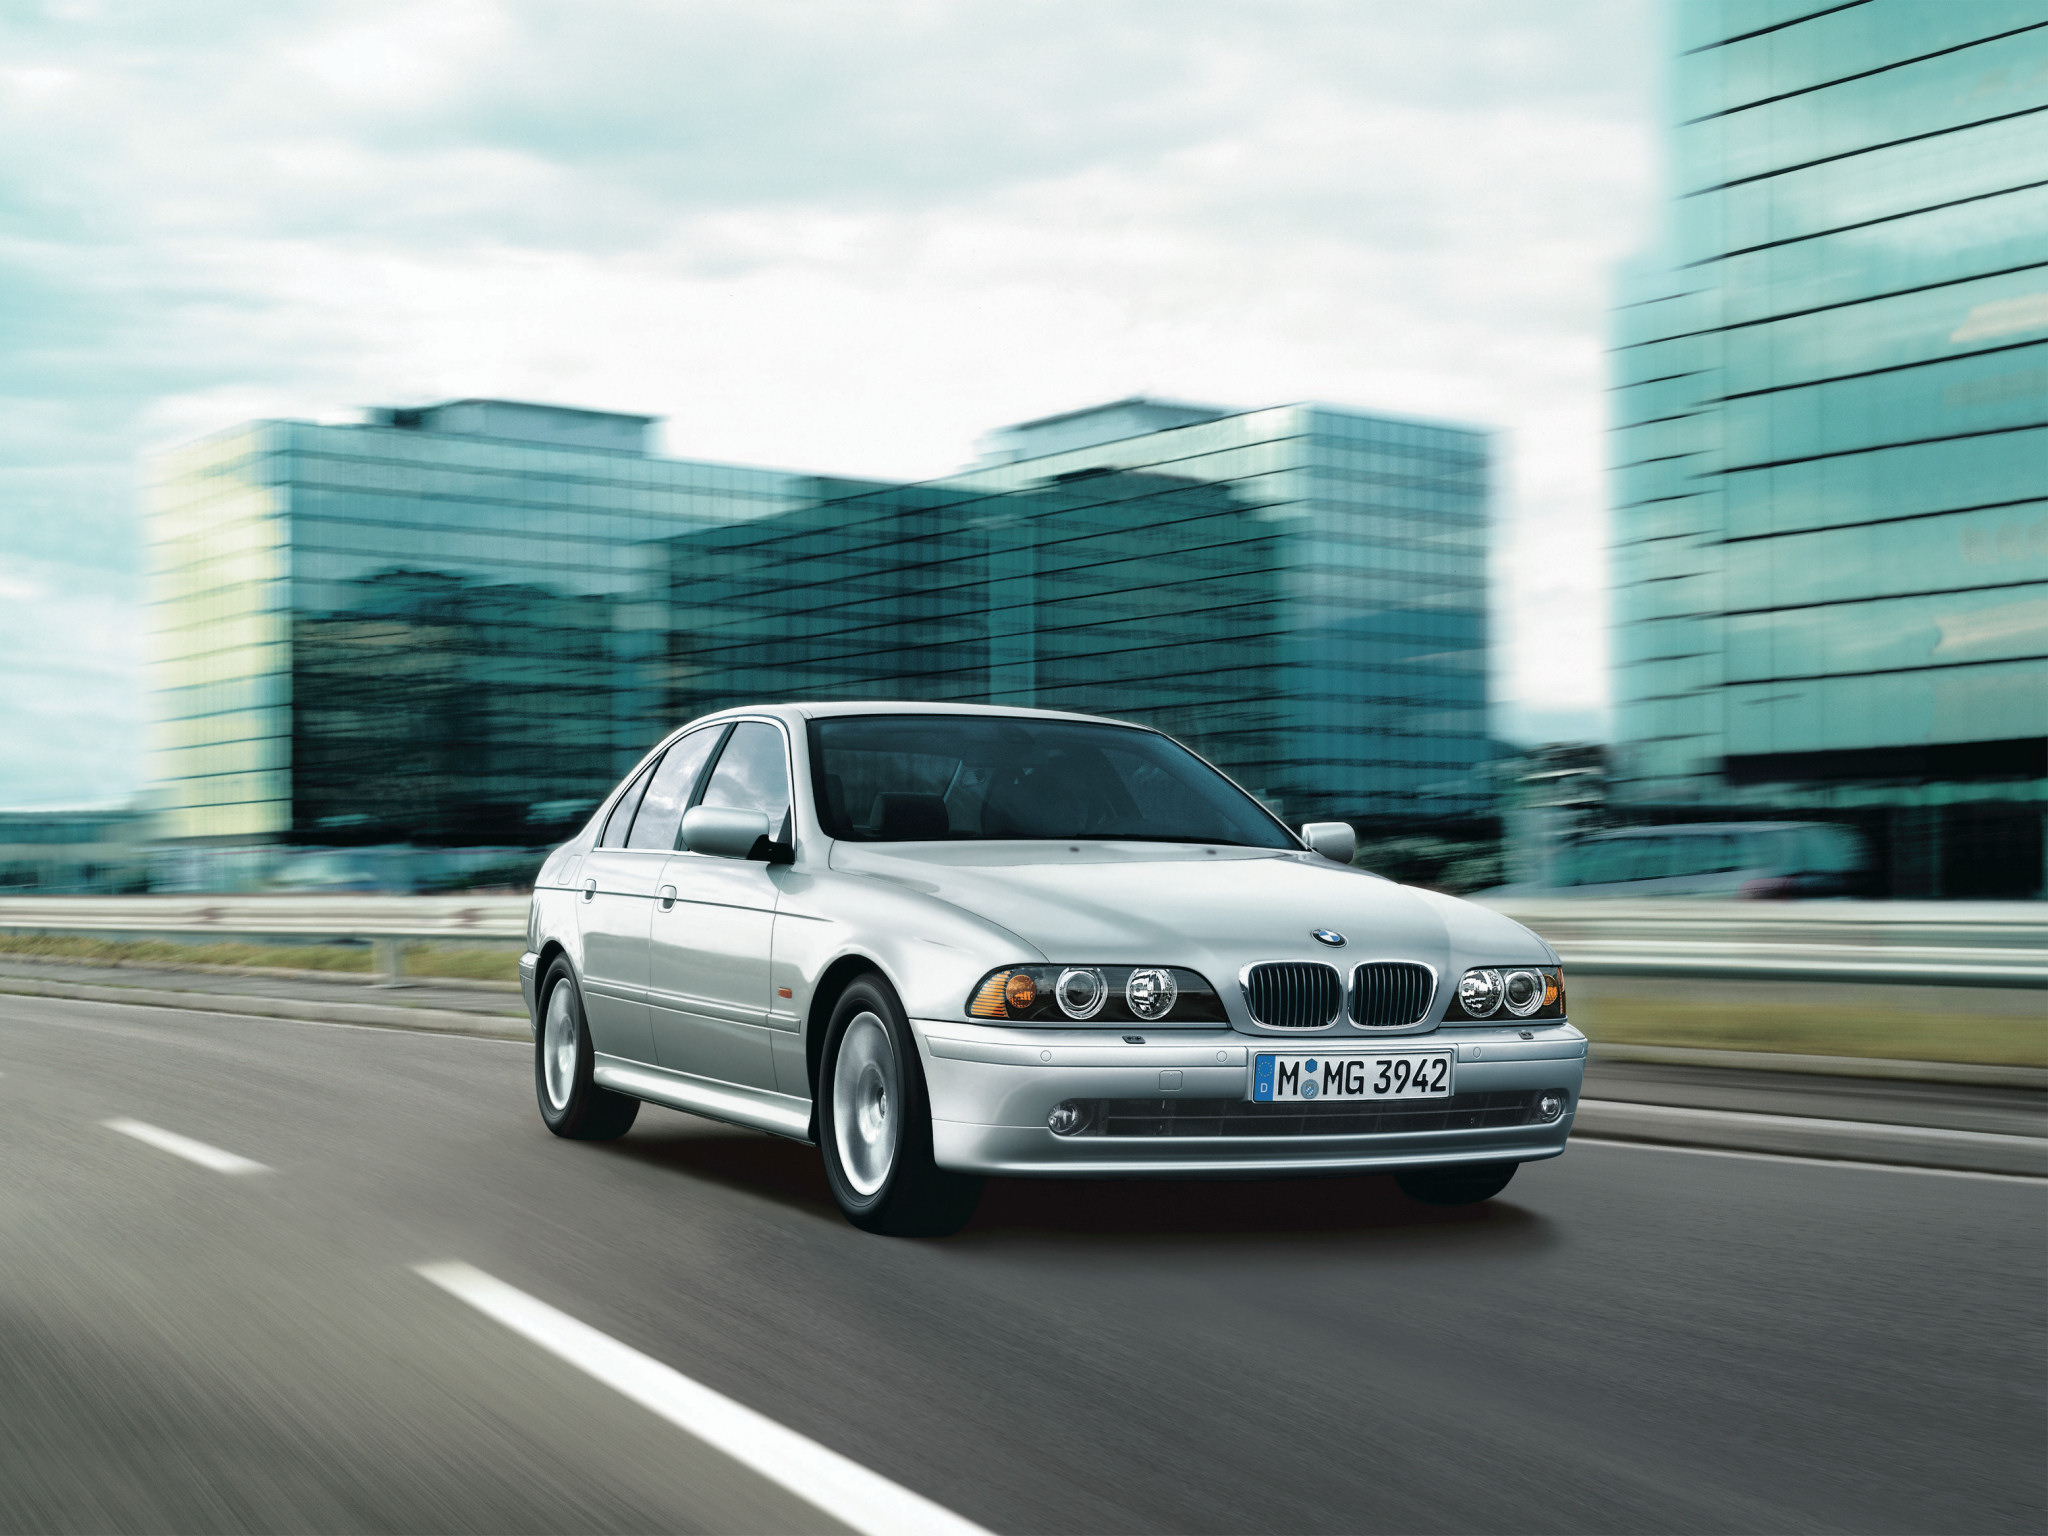 BMW 5 series 520d 2000 photo - 5